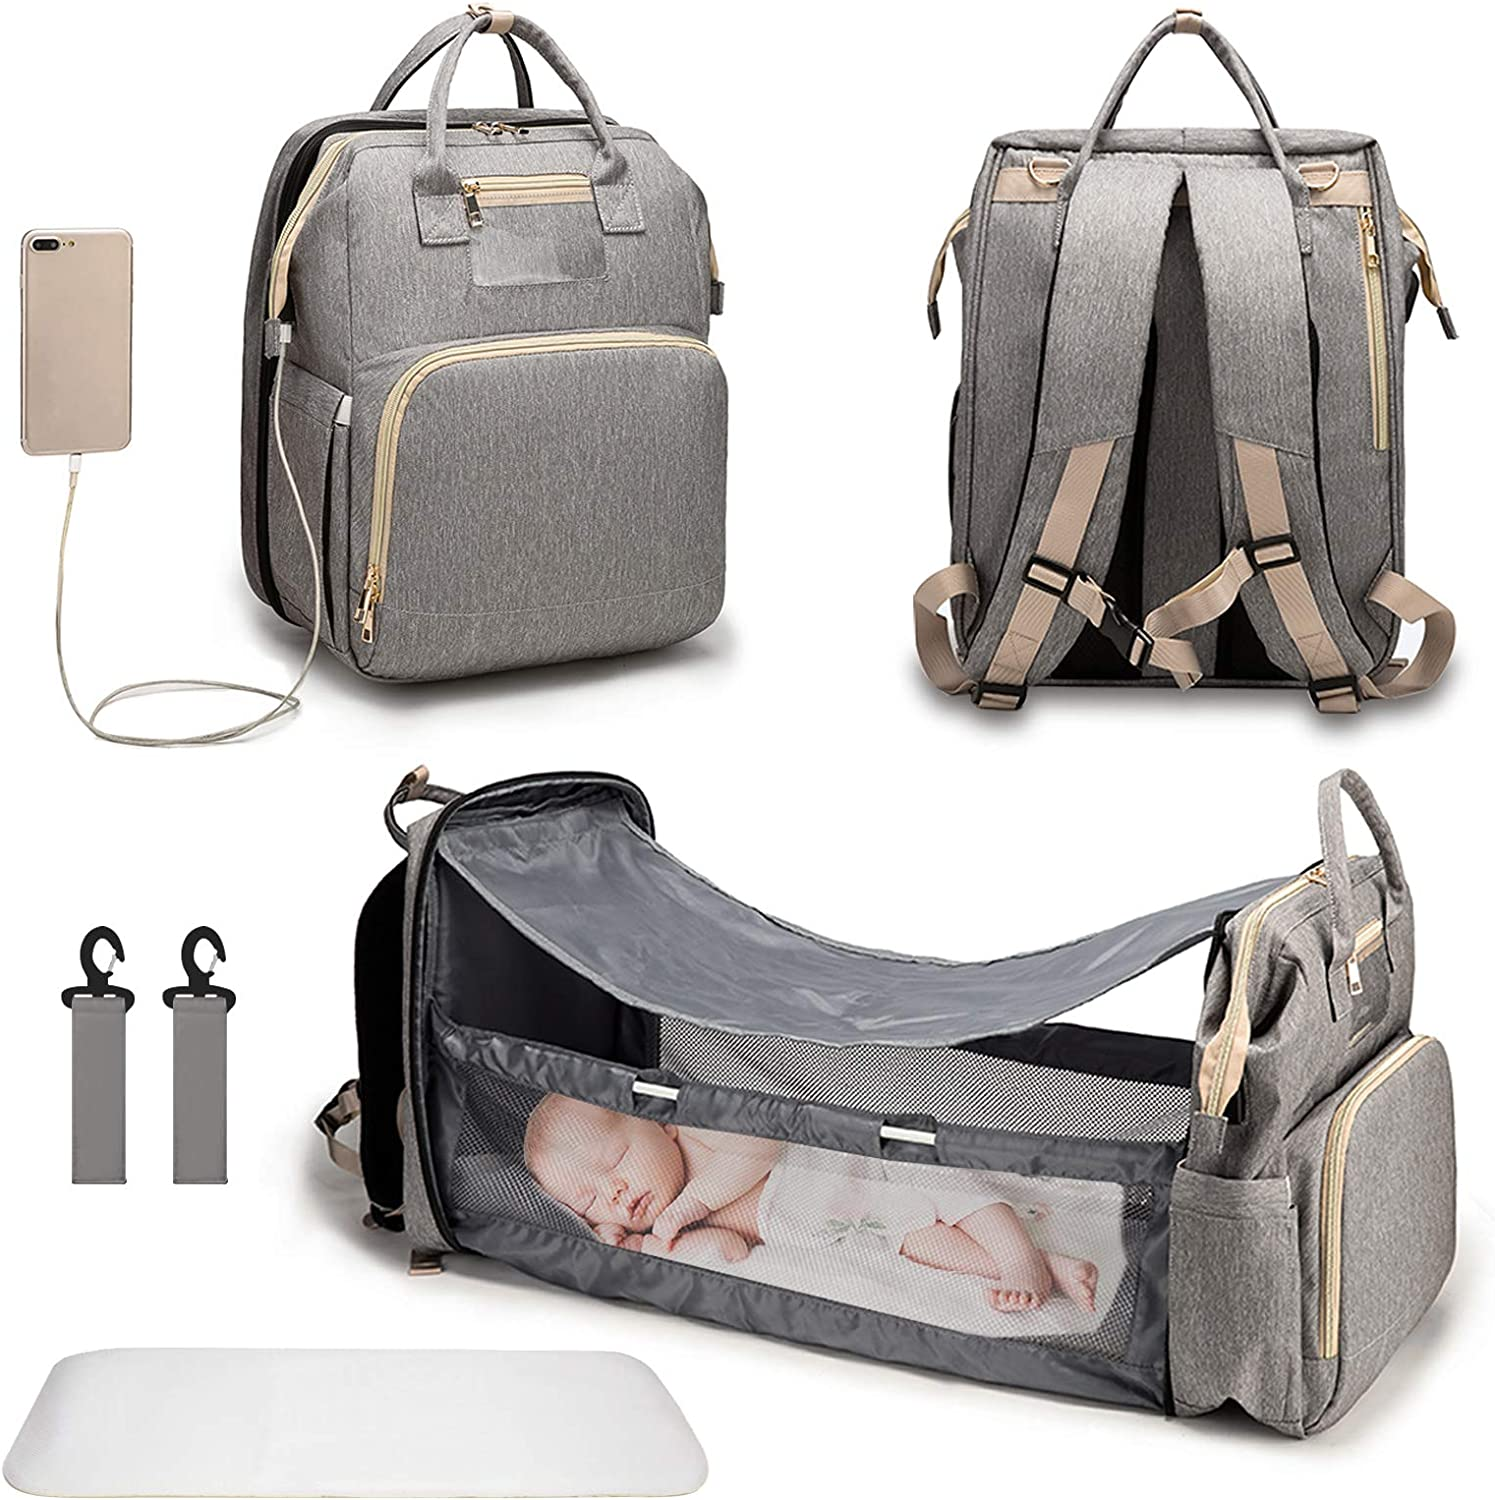 3 in 1 Diaper Bag Backpack, Travel Bassinet Foldable Baby Bed with USB Charging Port, Waterpoof, Portable Nappy Bag